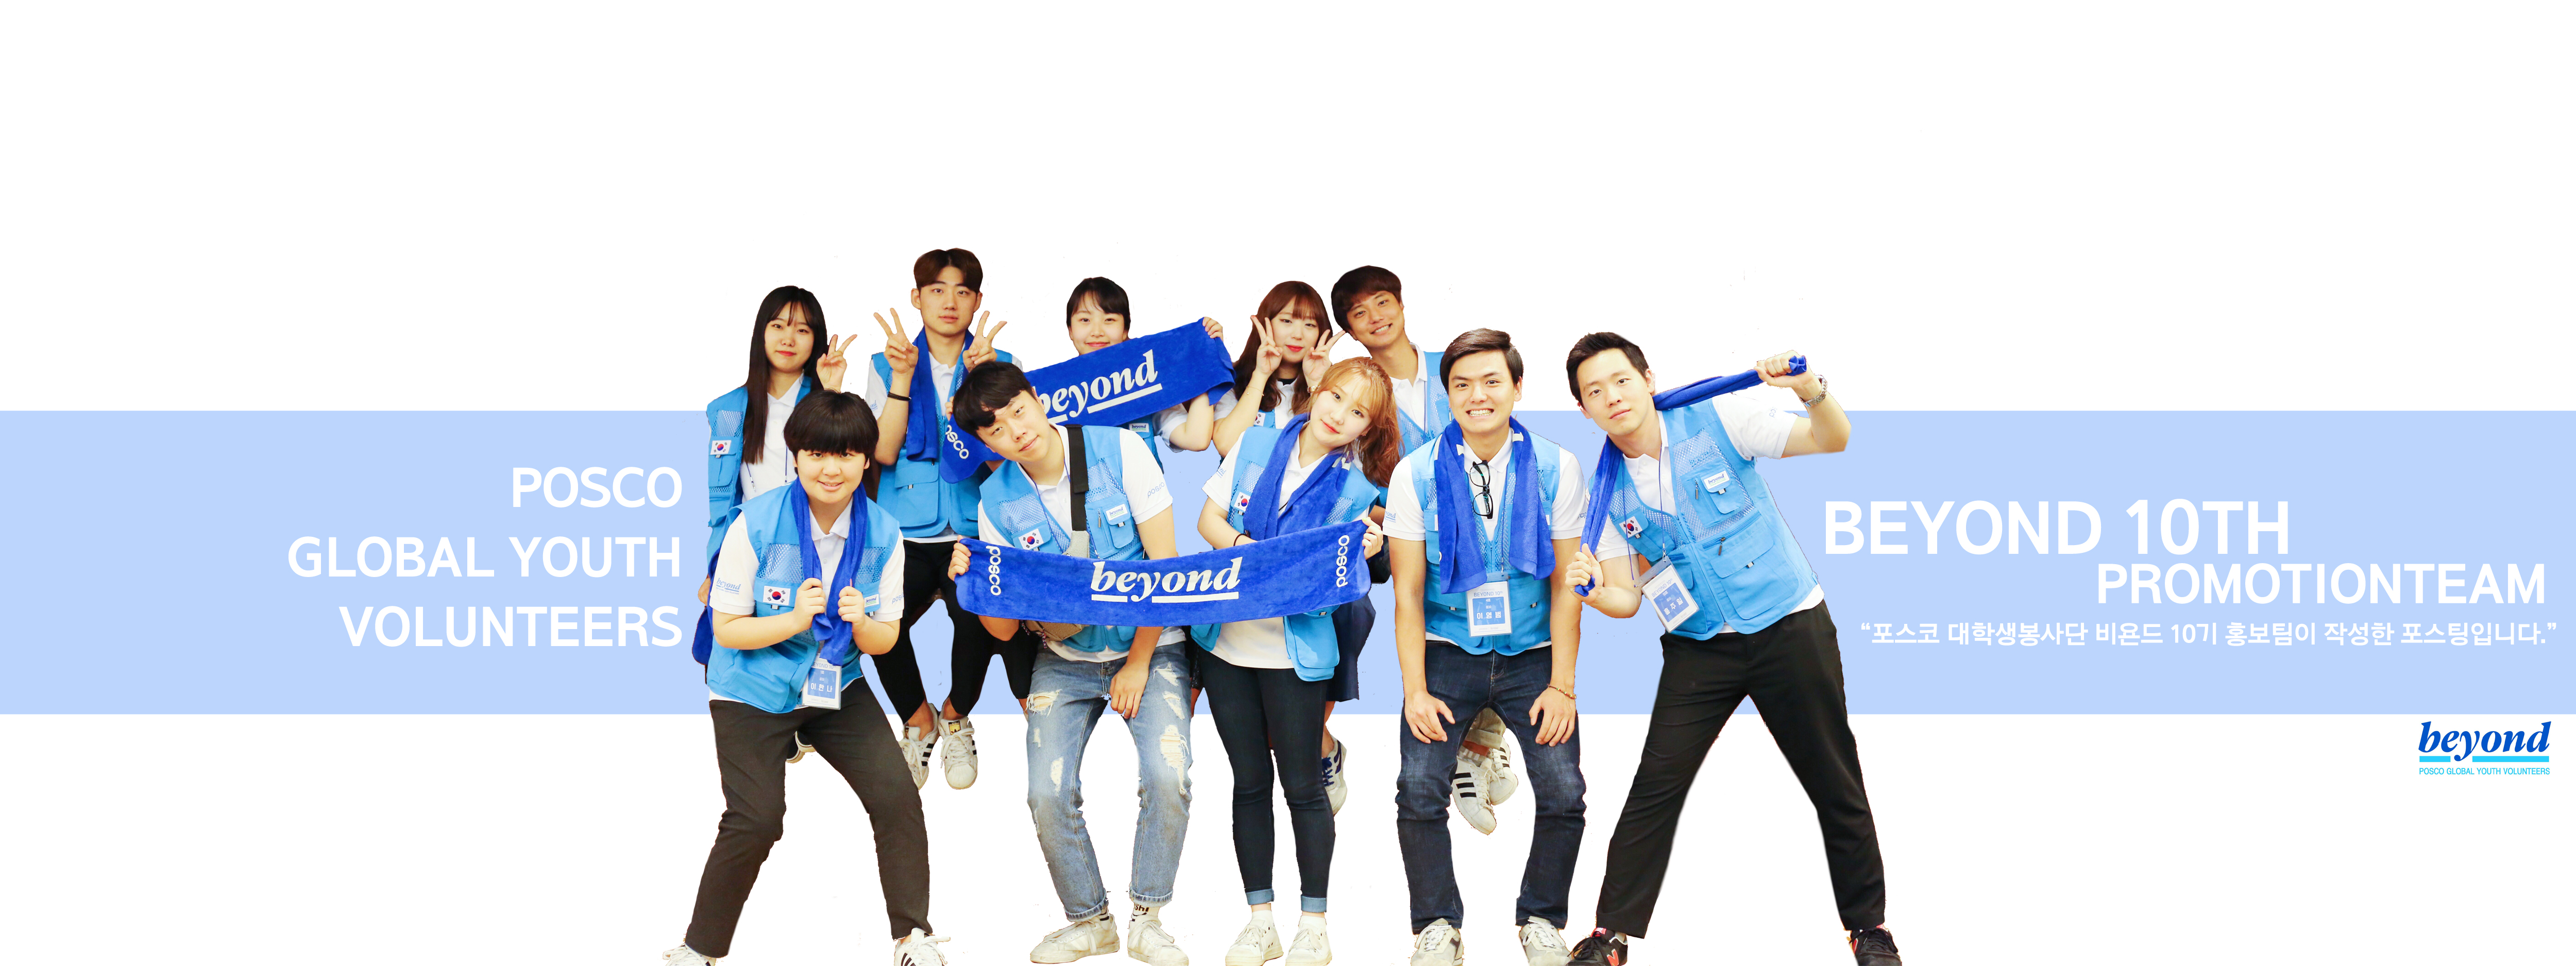 posco global youth volunteers beyond 10th promotion team